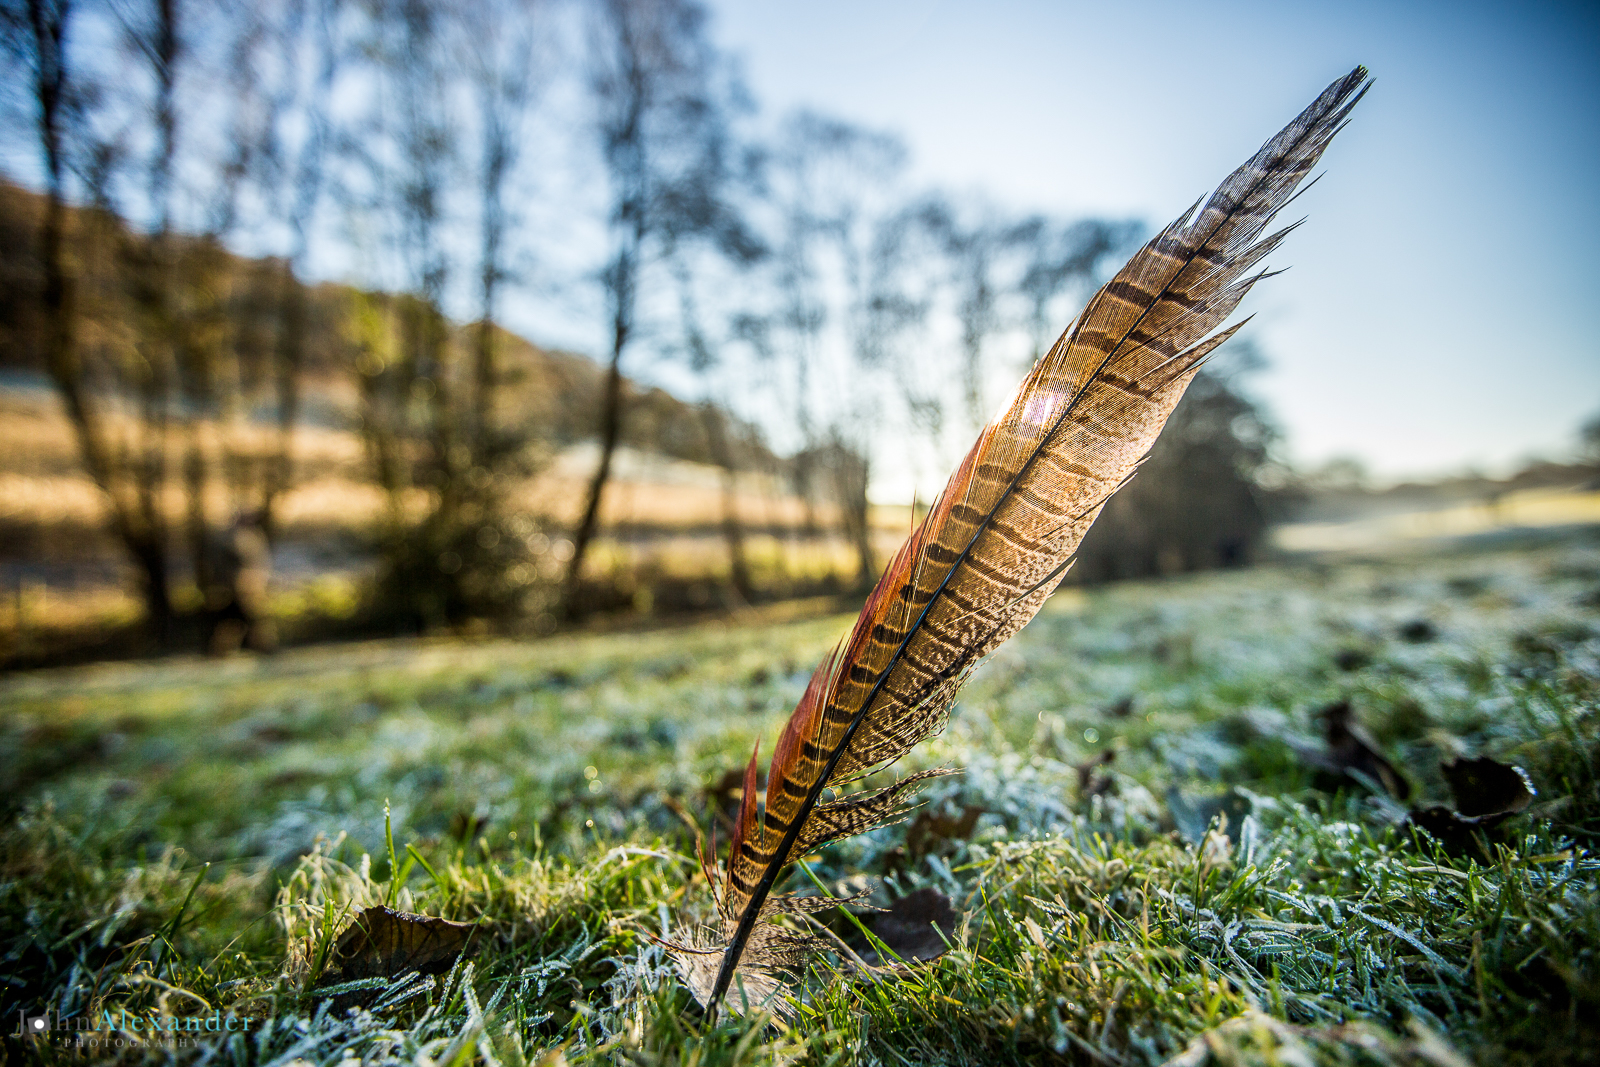 cock pheasant feather stuck in grass on game shoot in Wales